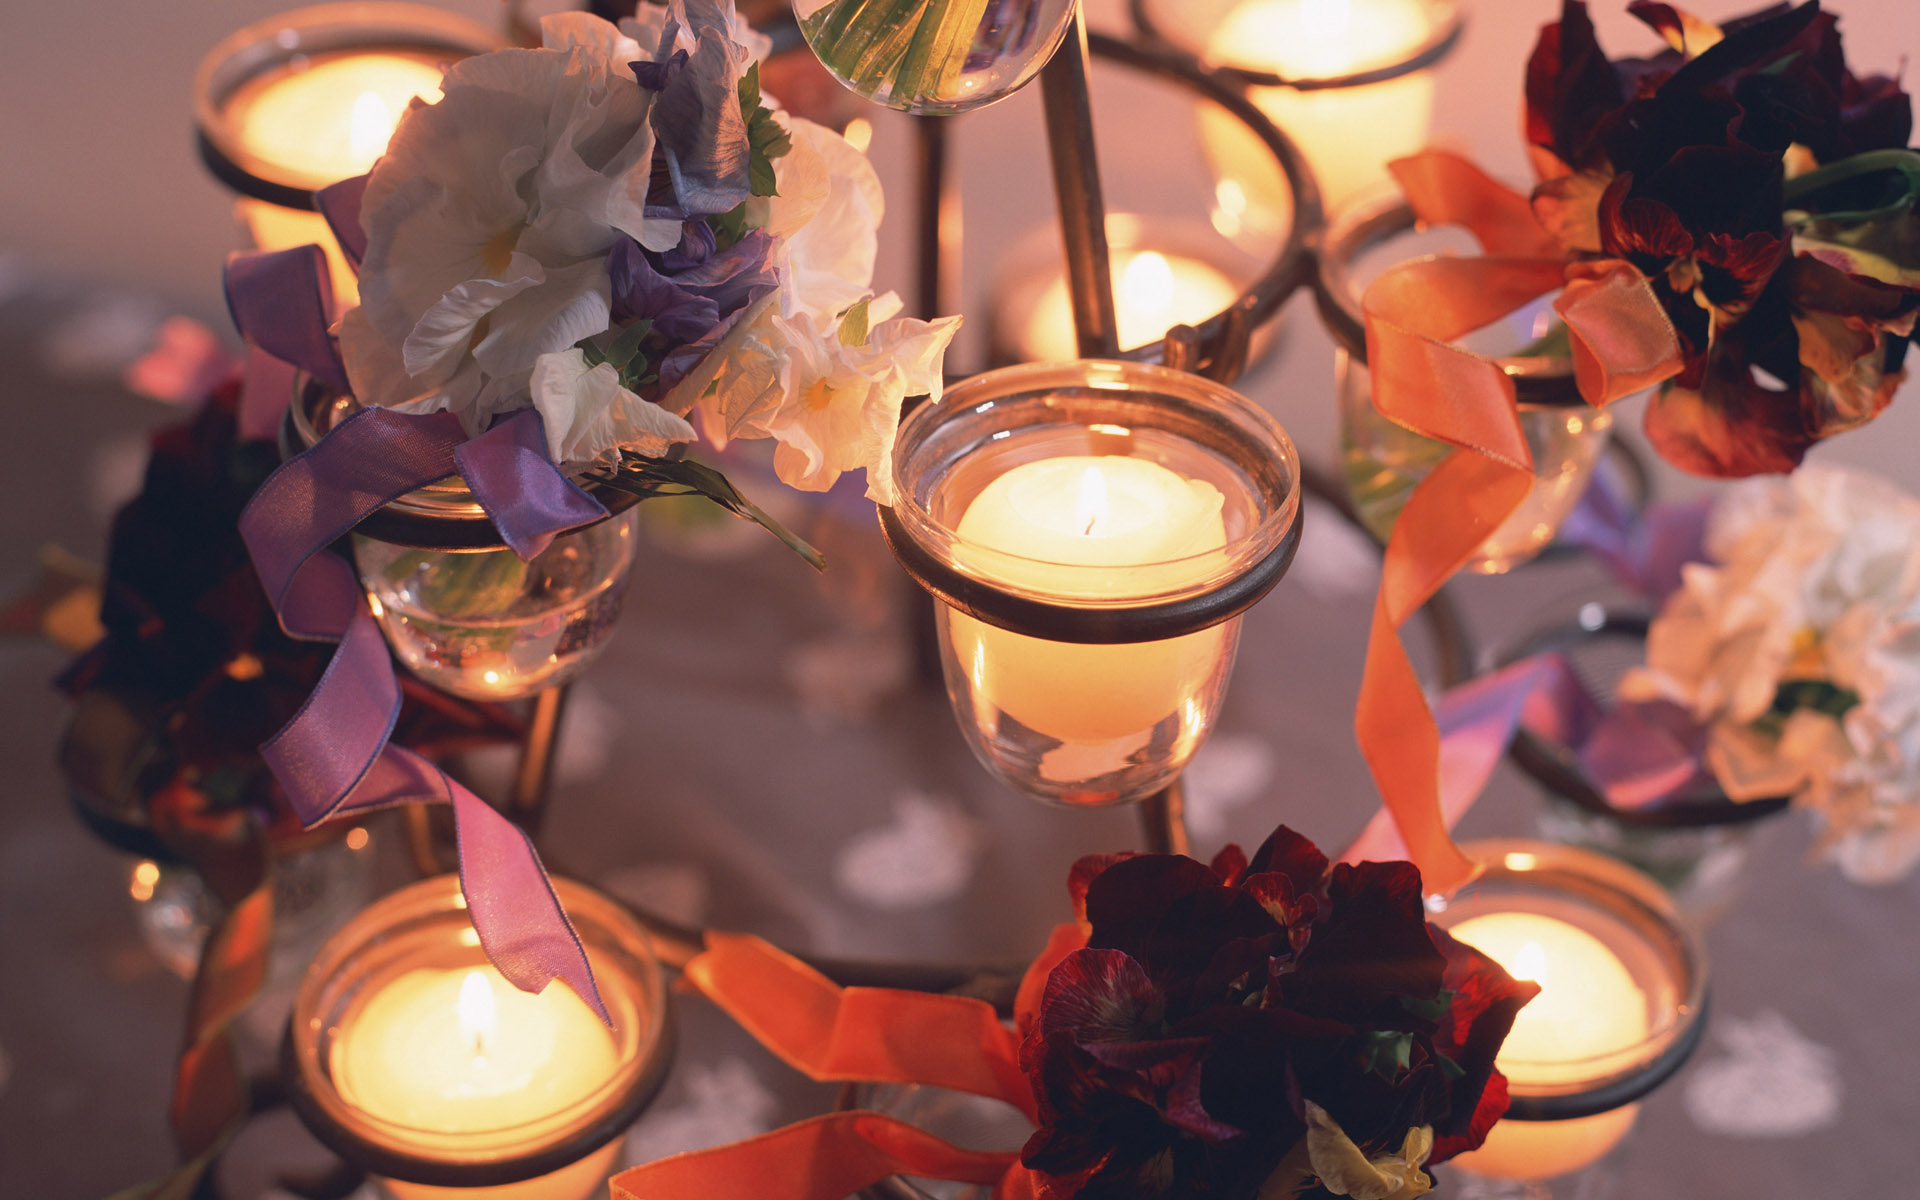 Candle wallpaper 13889